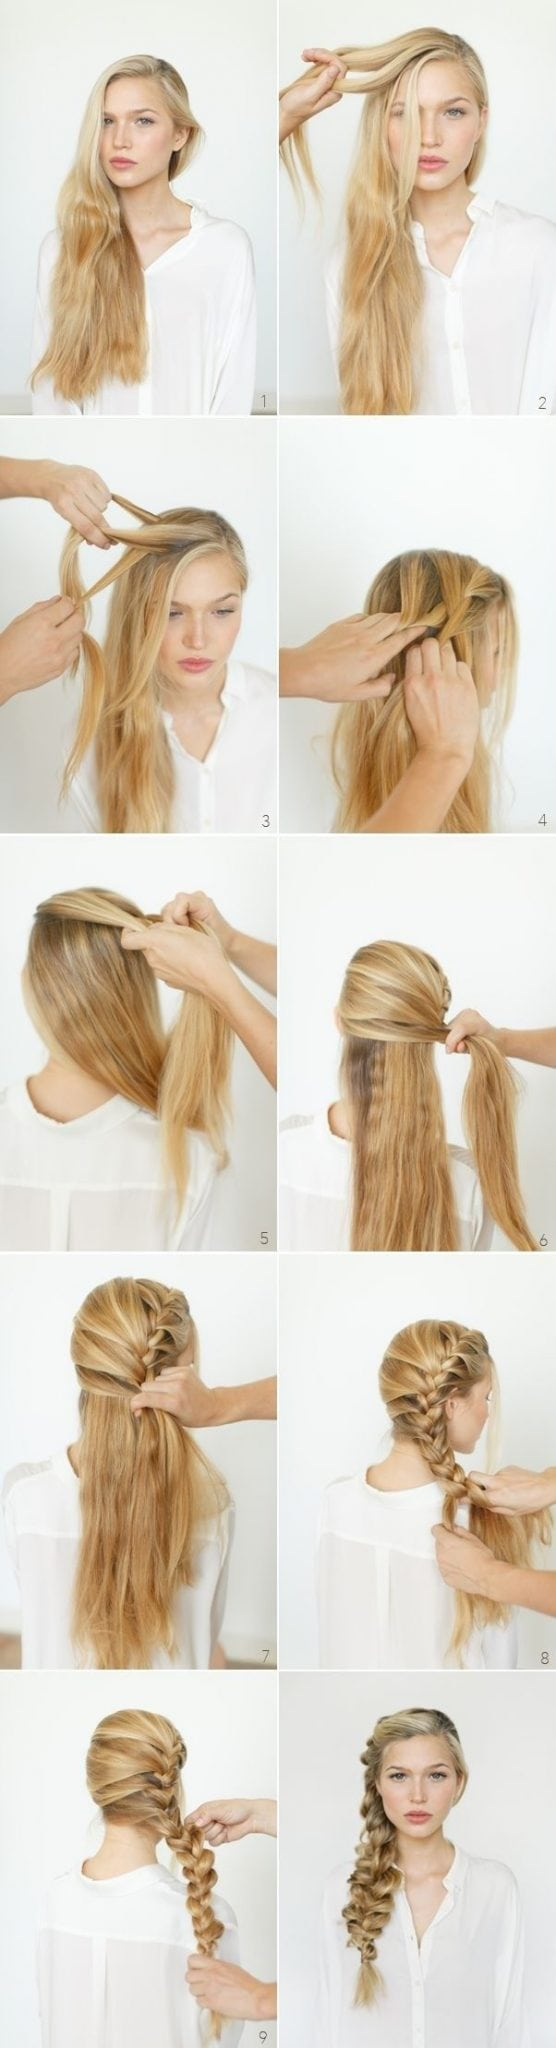 8 Cute Braided Hairstyles for Girls: Long Hair Ideas 2014 – 2015: Source by ilsz1990   …